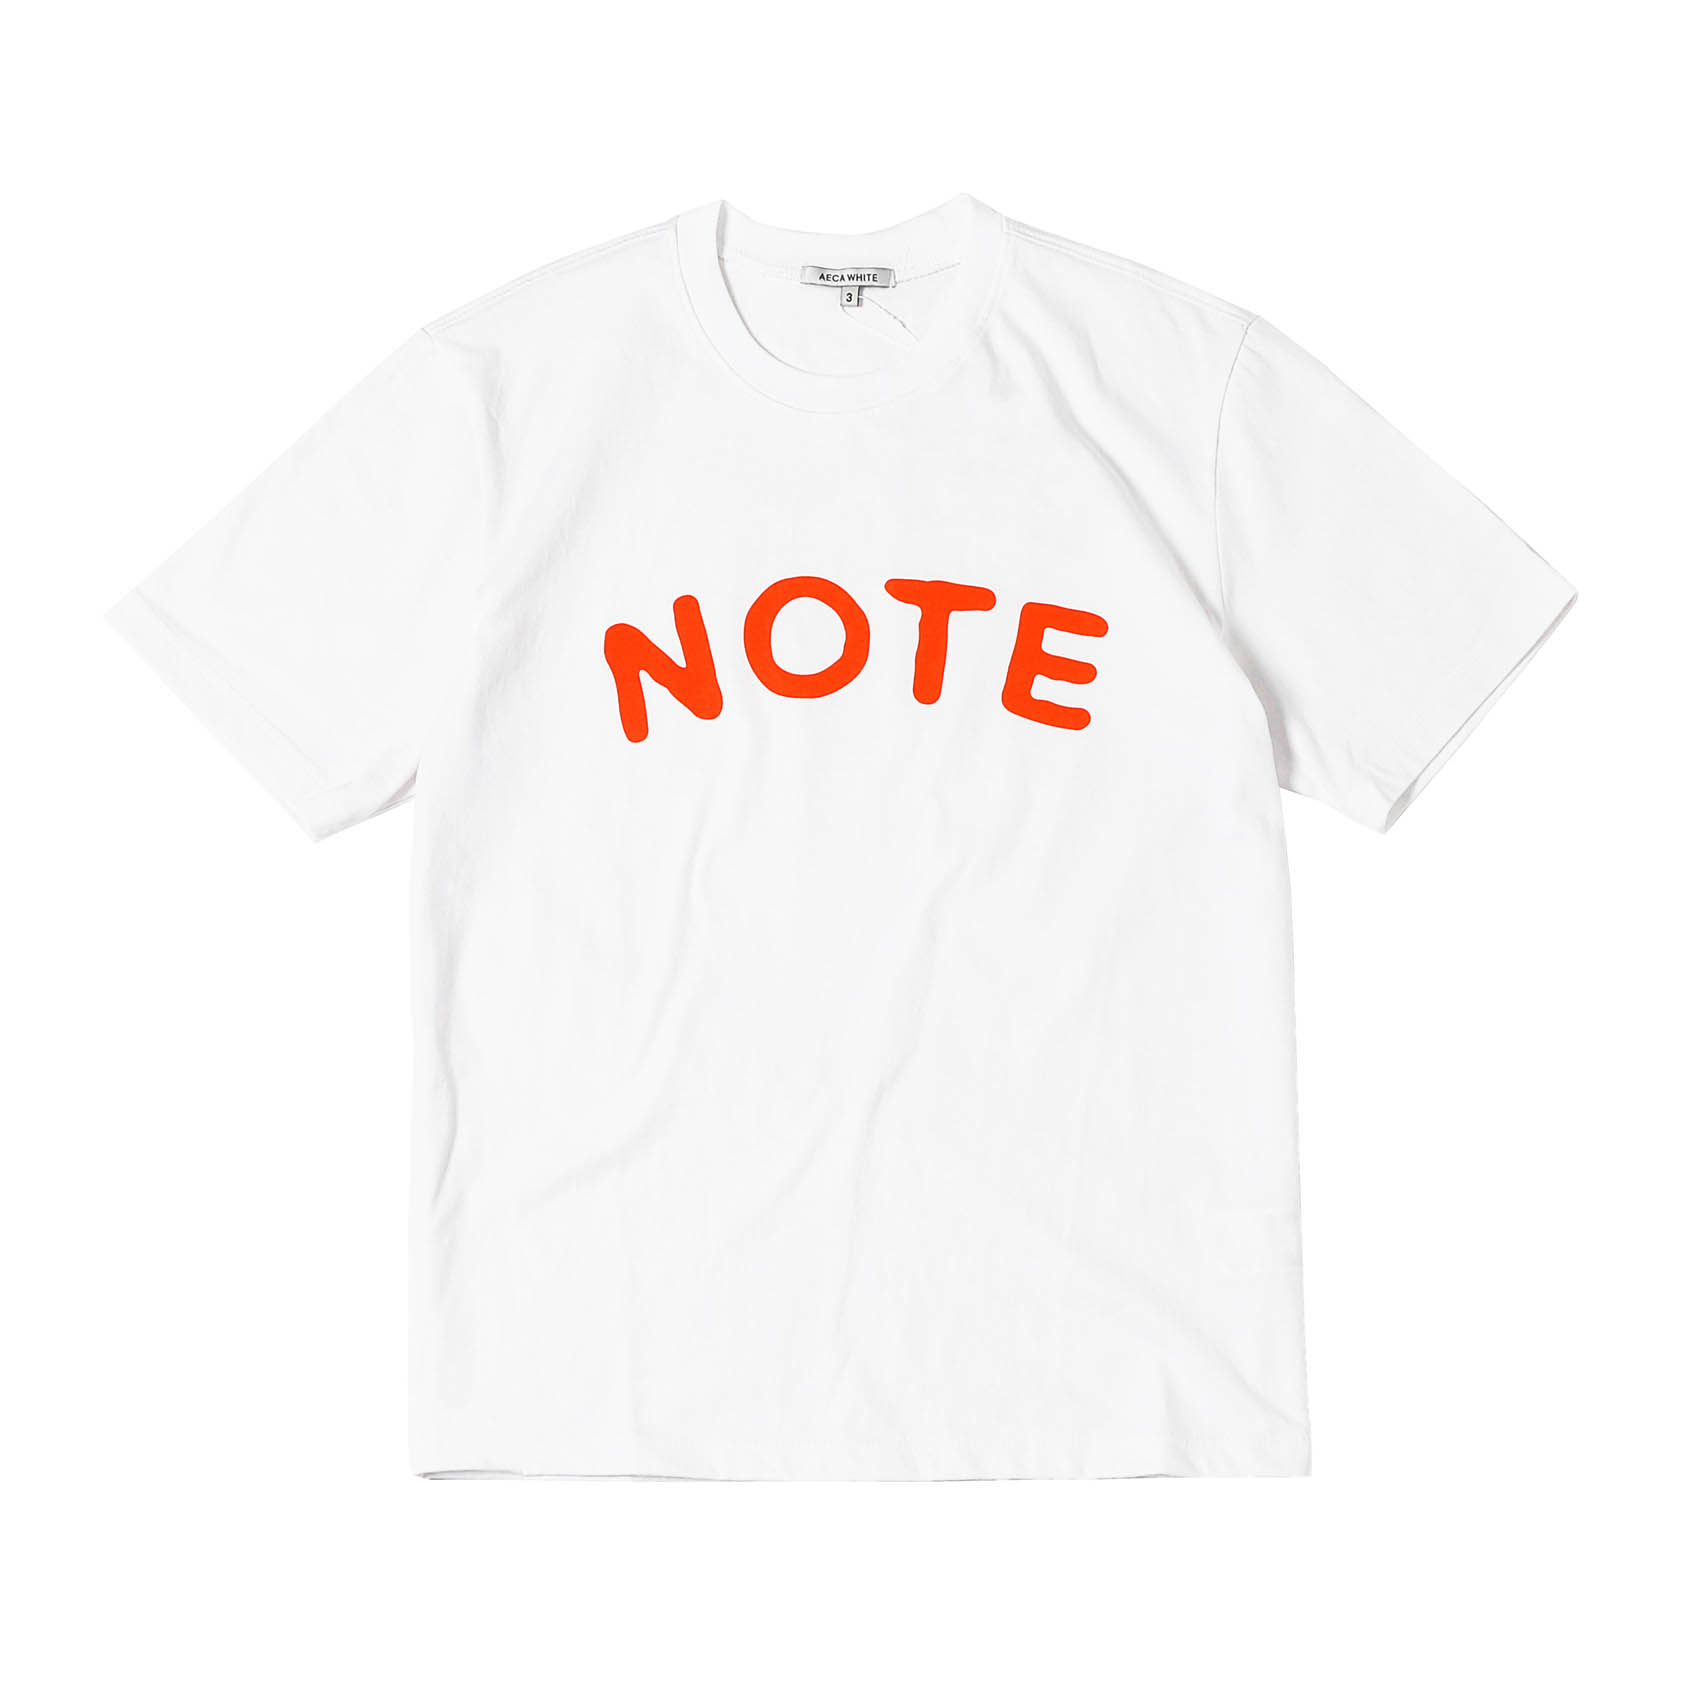 NOTE LOGO TEE - ORANGE